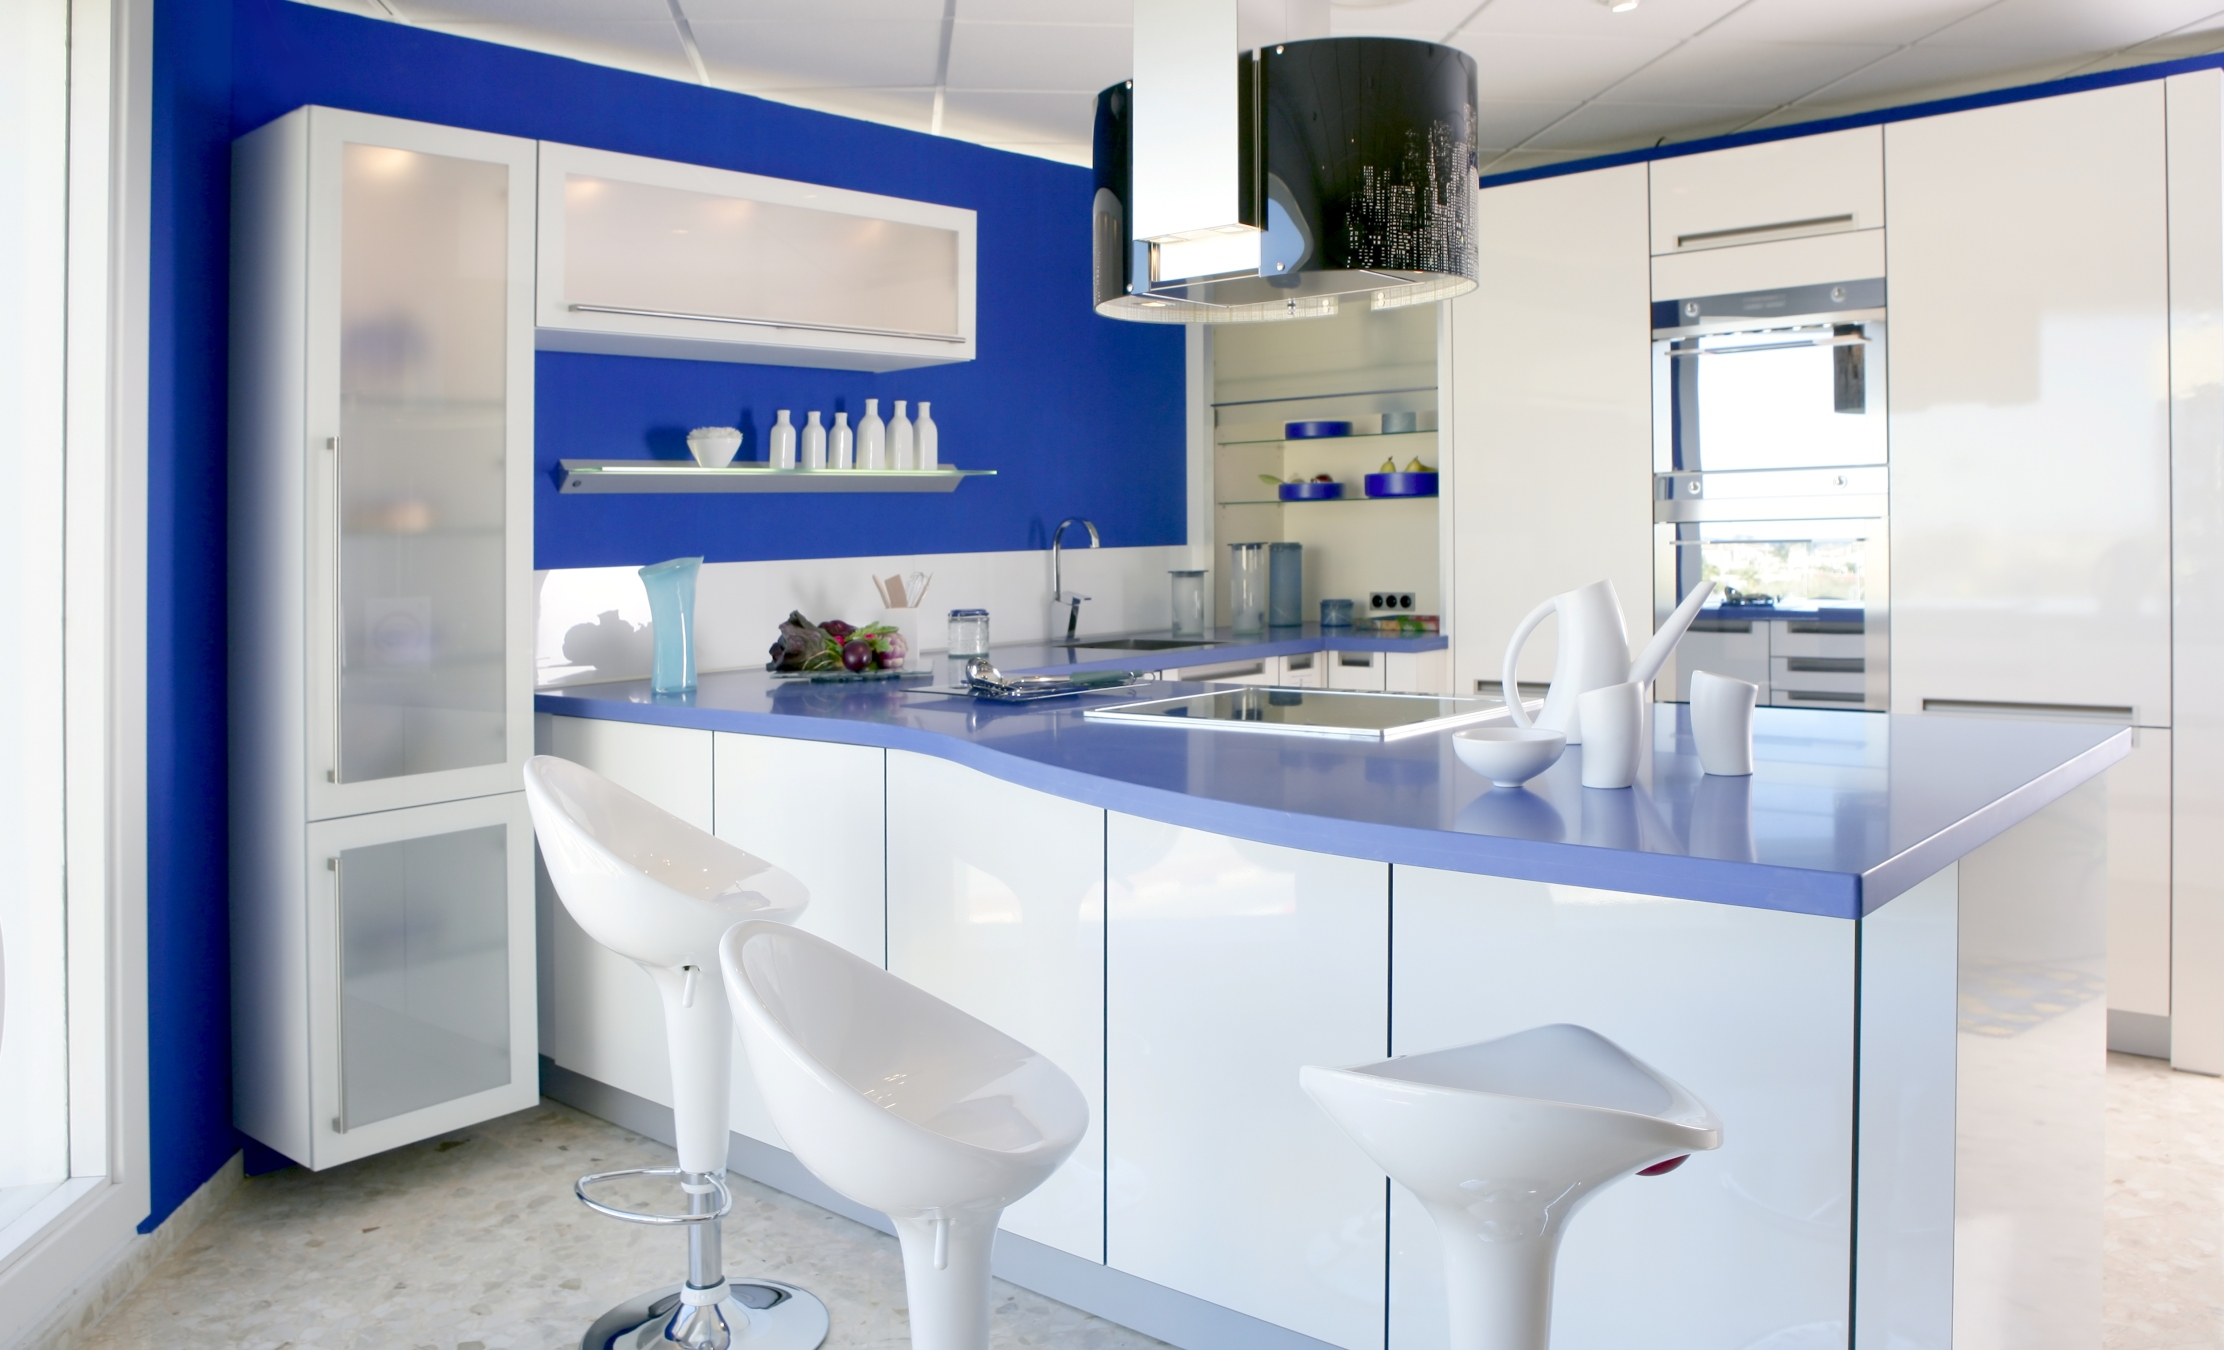 Inspiring blue kitchen d cor ideas homesfeed for Kitchen designs blue